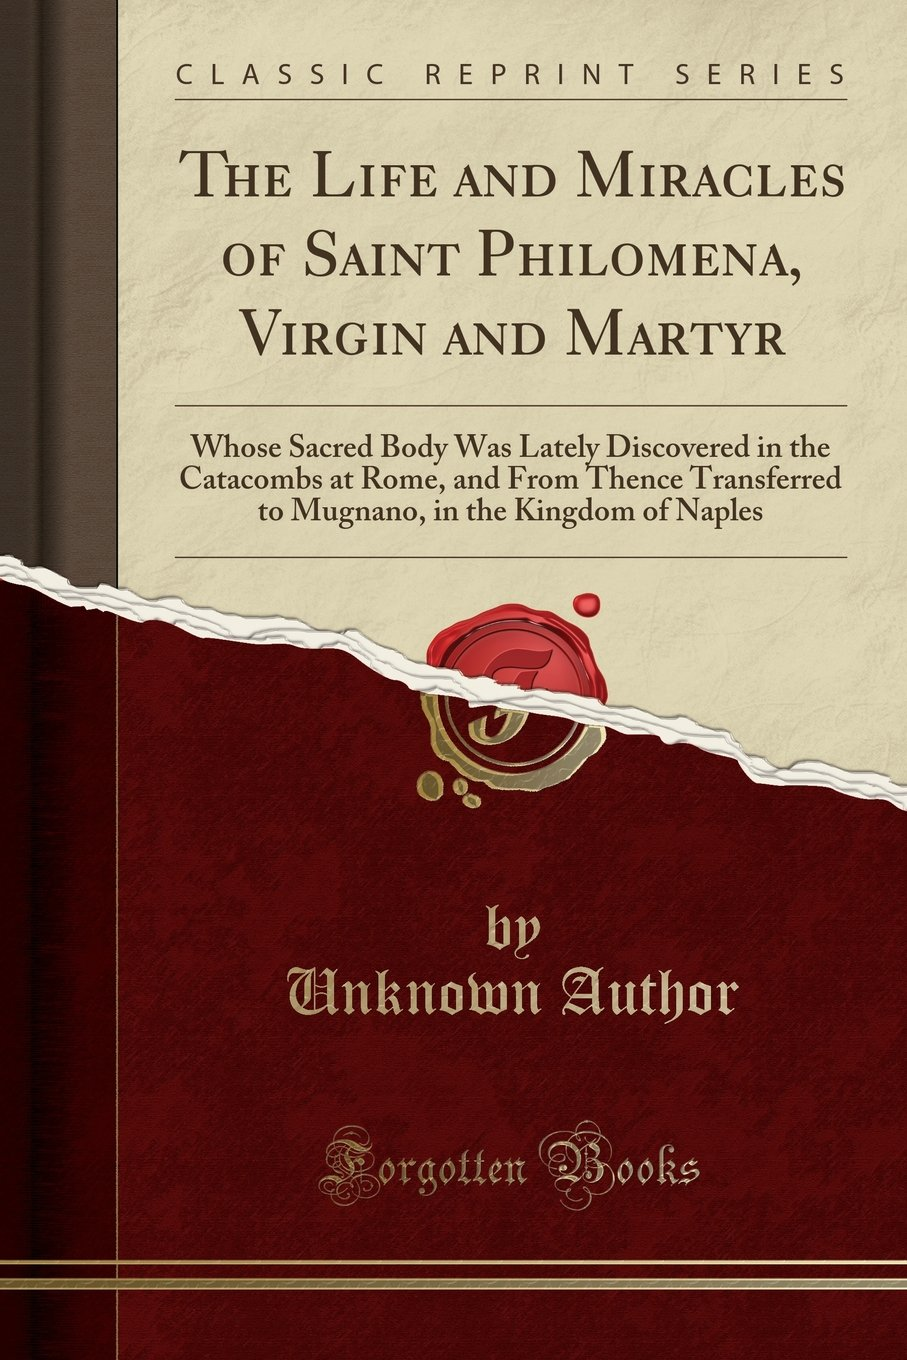 The Life and Miracles of Saint Philomena, Virgin and Martyr: Whose Sacred Body Was Lately Discovered in the Catacombs at Rome, and From Thence ... in the Kingdom of Naples (Classic Reprint) pdf epub